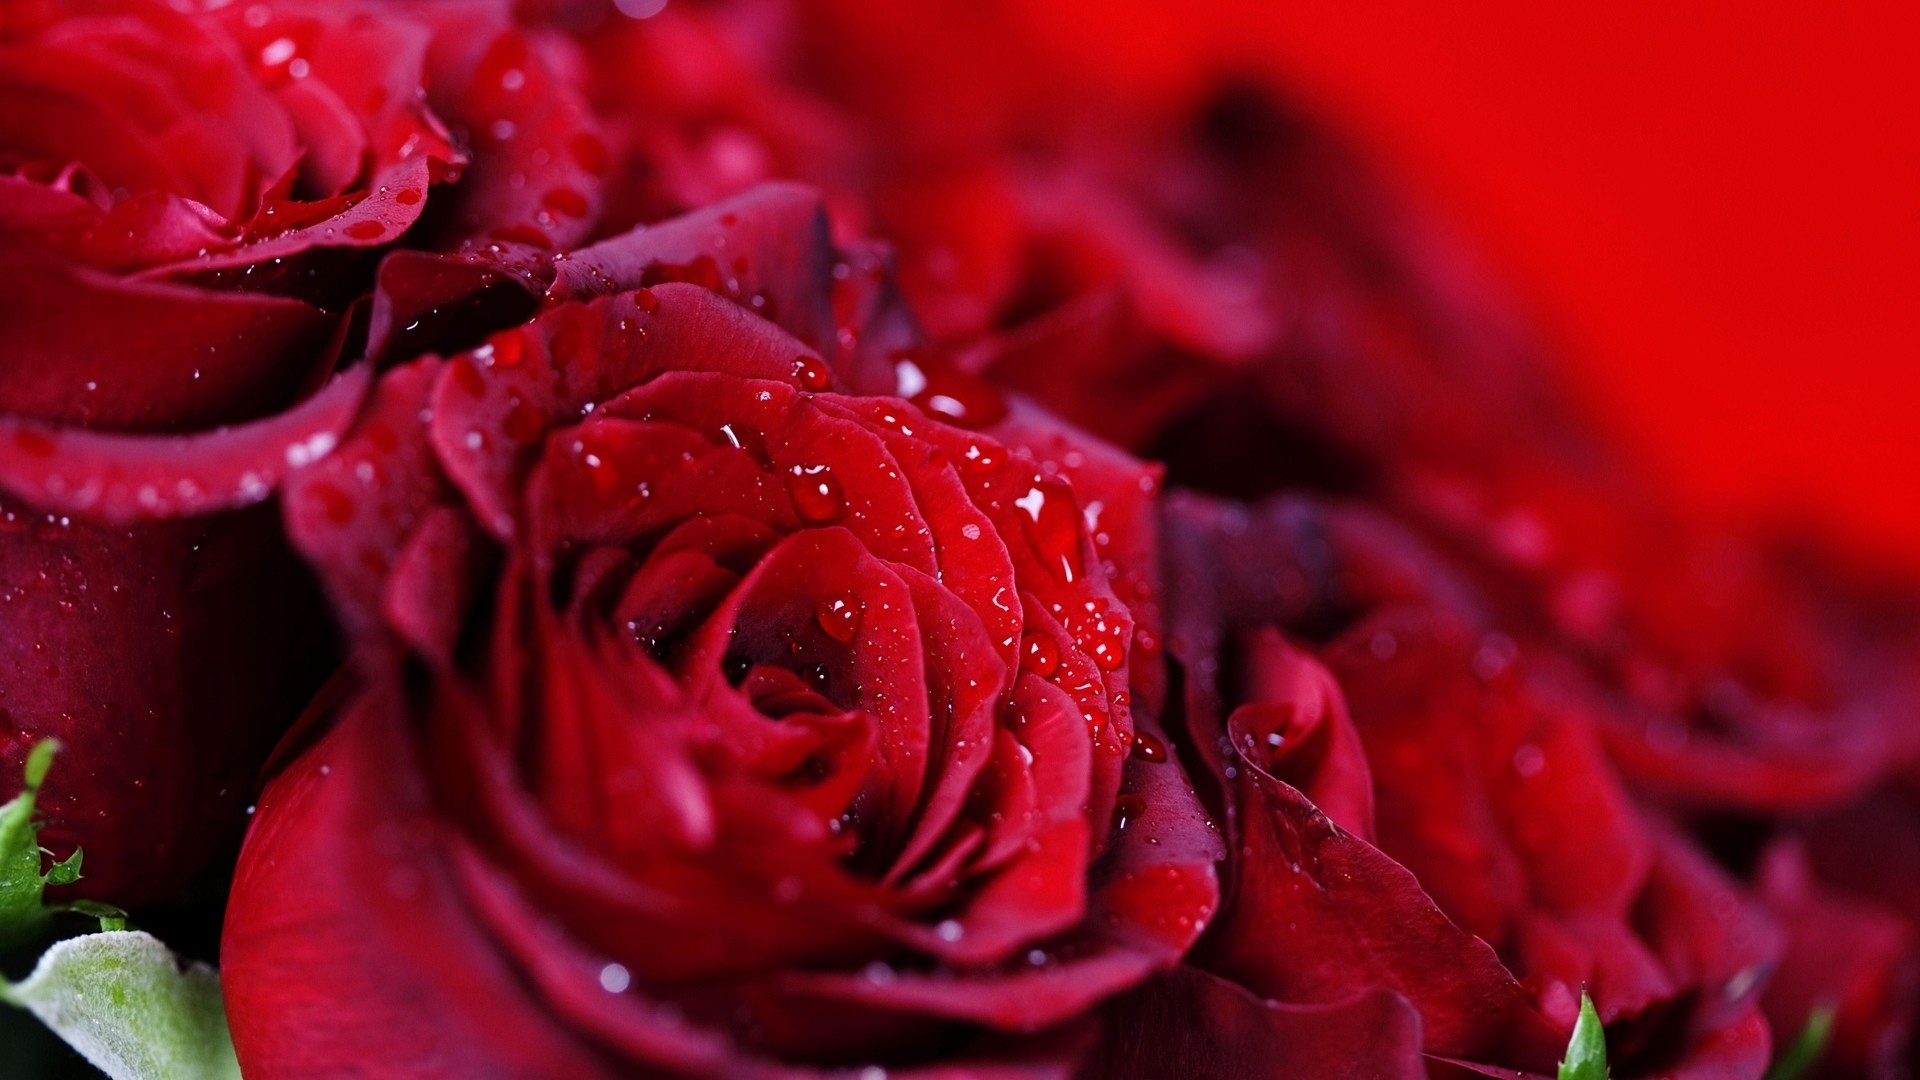 Red Rose hd wallpaper download